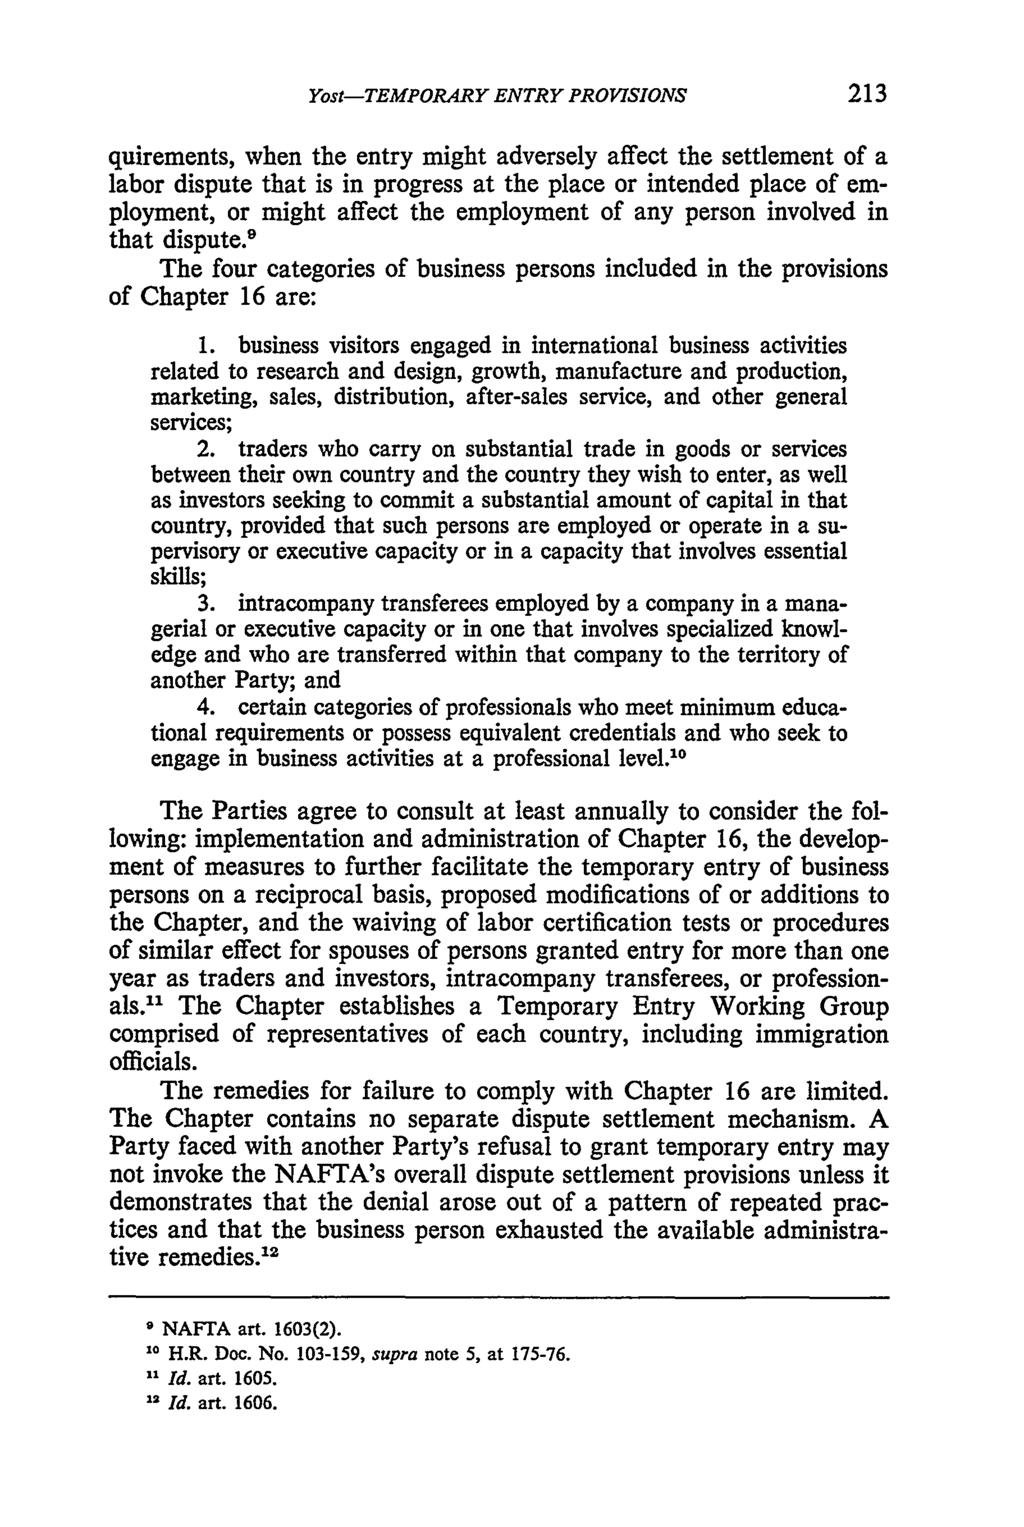 Yost: NAFTA--Temporary Entry Provisions--Immigration Dimensions Yost-TEMPORARY ENTRY PROVISIONS quirements, when the entry might adversely affect the settlement of a labor dispute that is in progress